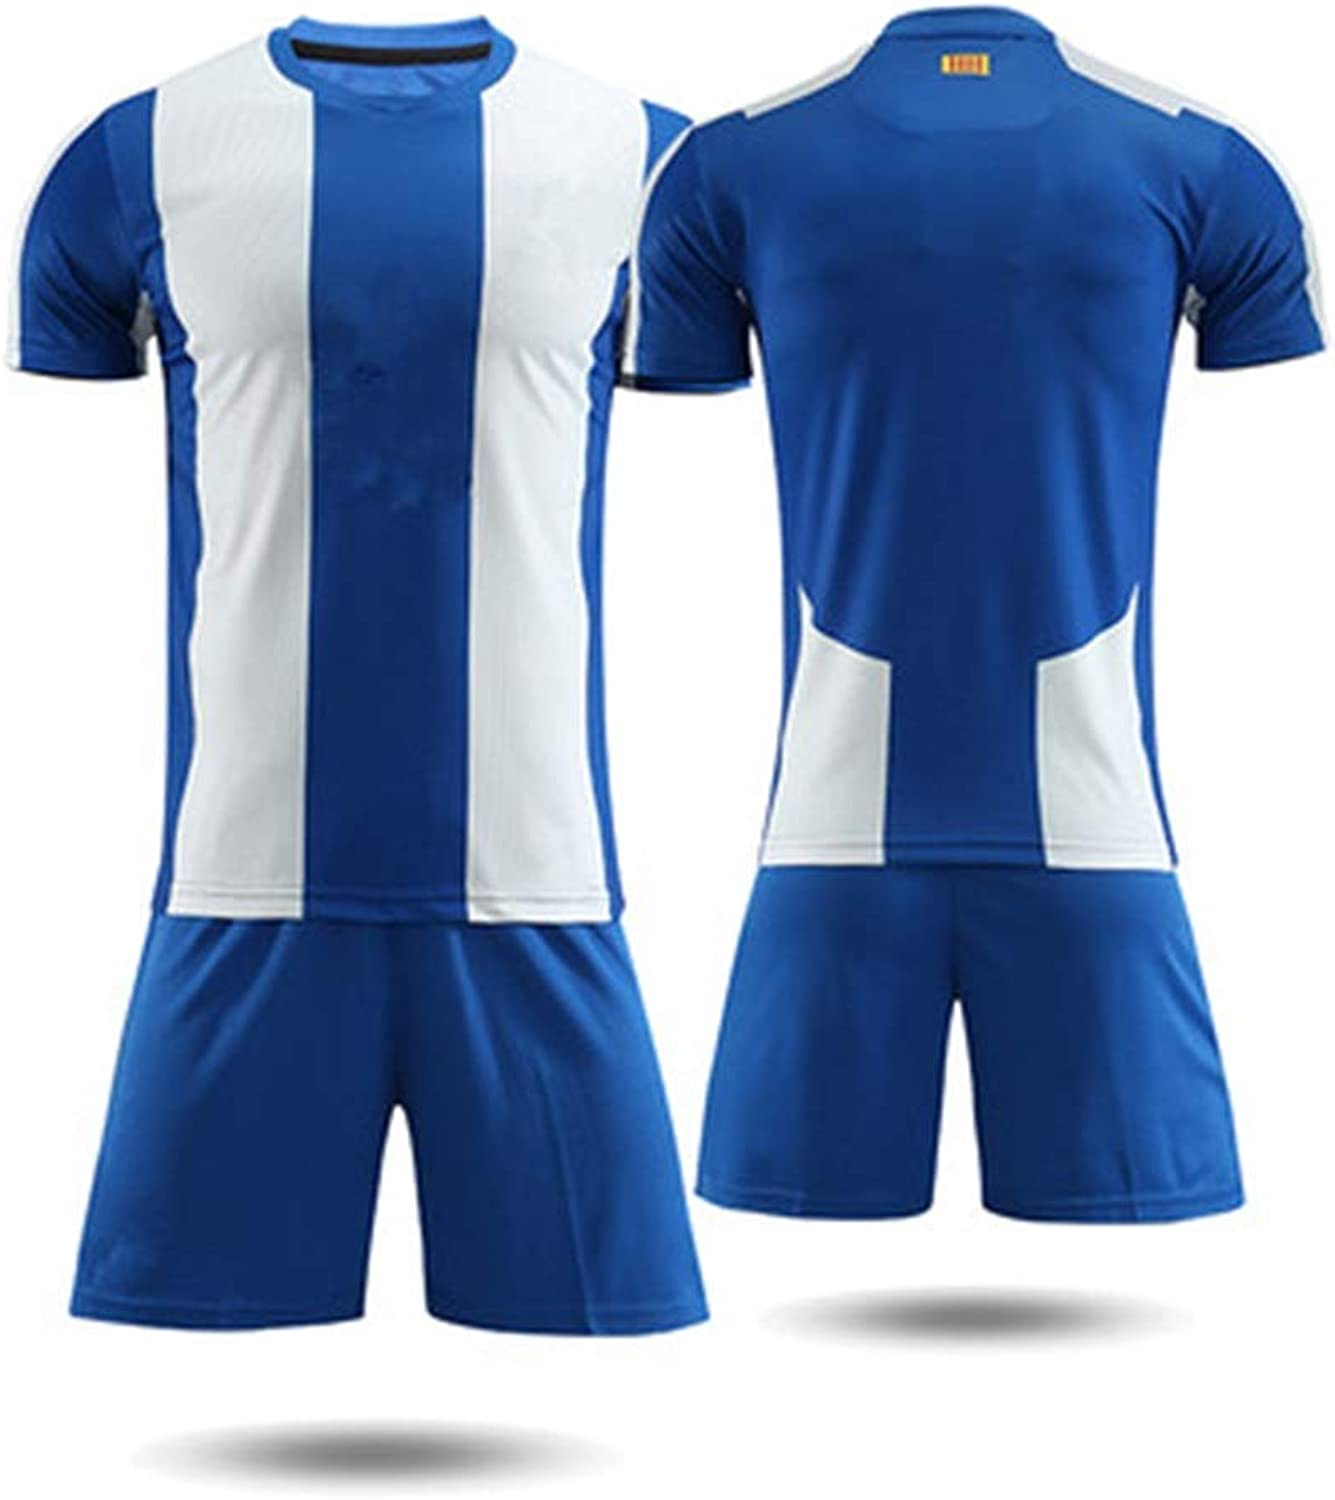 YAXIAO T-Shirt Men's Short-Sleeved Shorts Spain Training Suit Football Clothing Football Clothes T-Shirt (color   A, Size   2XL)